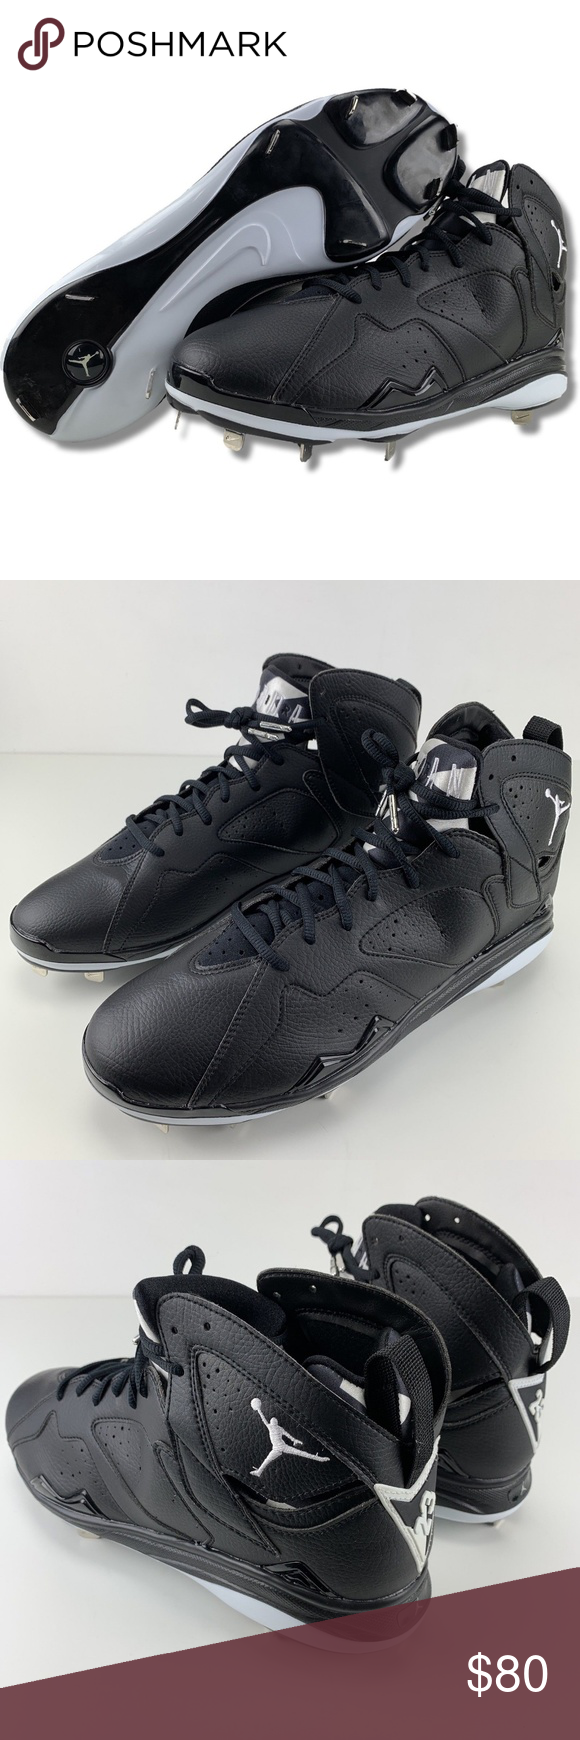 262a5d3a8c4 Nike Air Jordan Retro Baseball Cleats Nike Air Jordan Retro 7 VII Mens Size  13 Metal Baseball Pro Cleats Black White Brand New Cleats